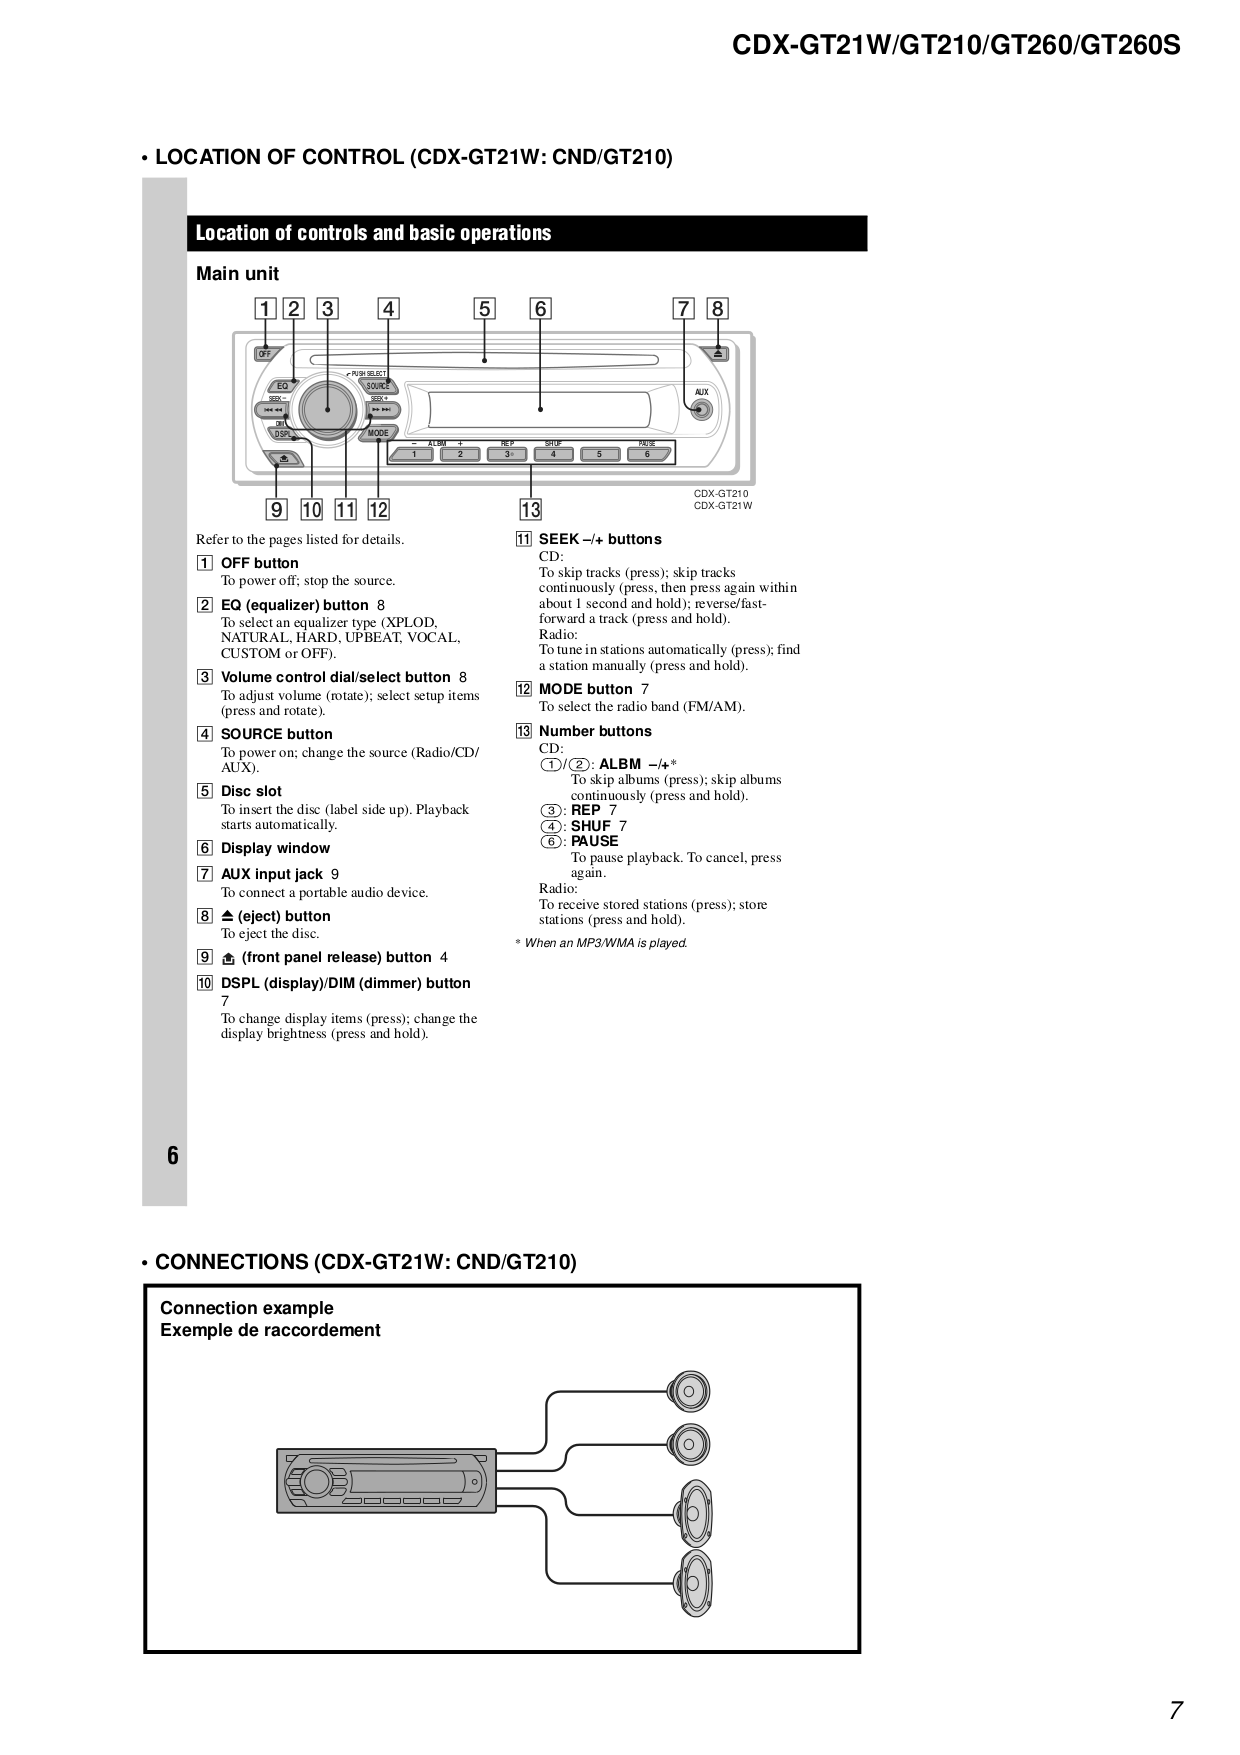 cdx gt21w gt210 gt260.pdf 6?resize=665%2C941 wiring diagram for sony xplod cdx gt210 wiring diagram sony cdx gt210 wiring harness at cos-gaming.co